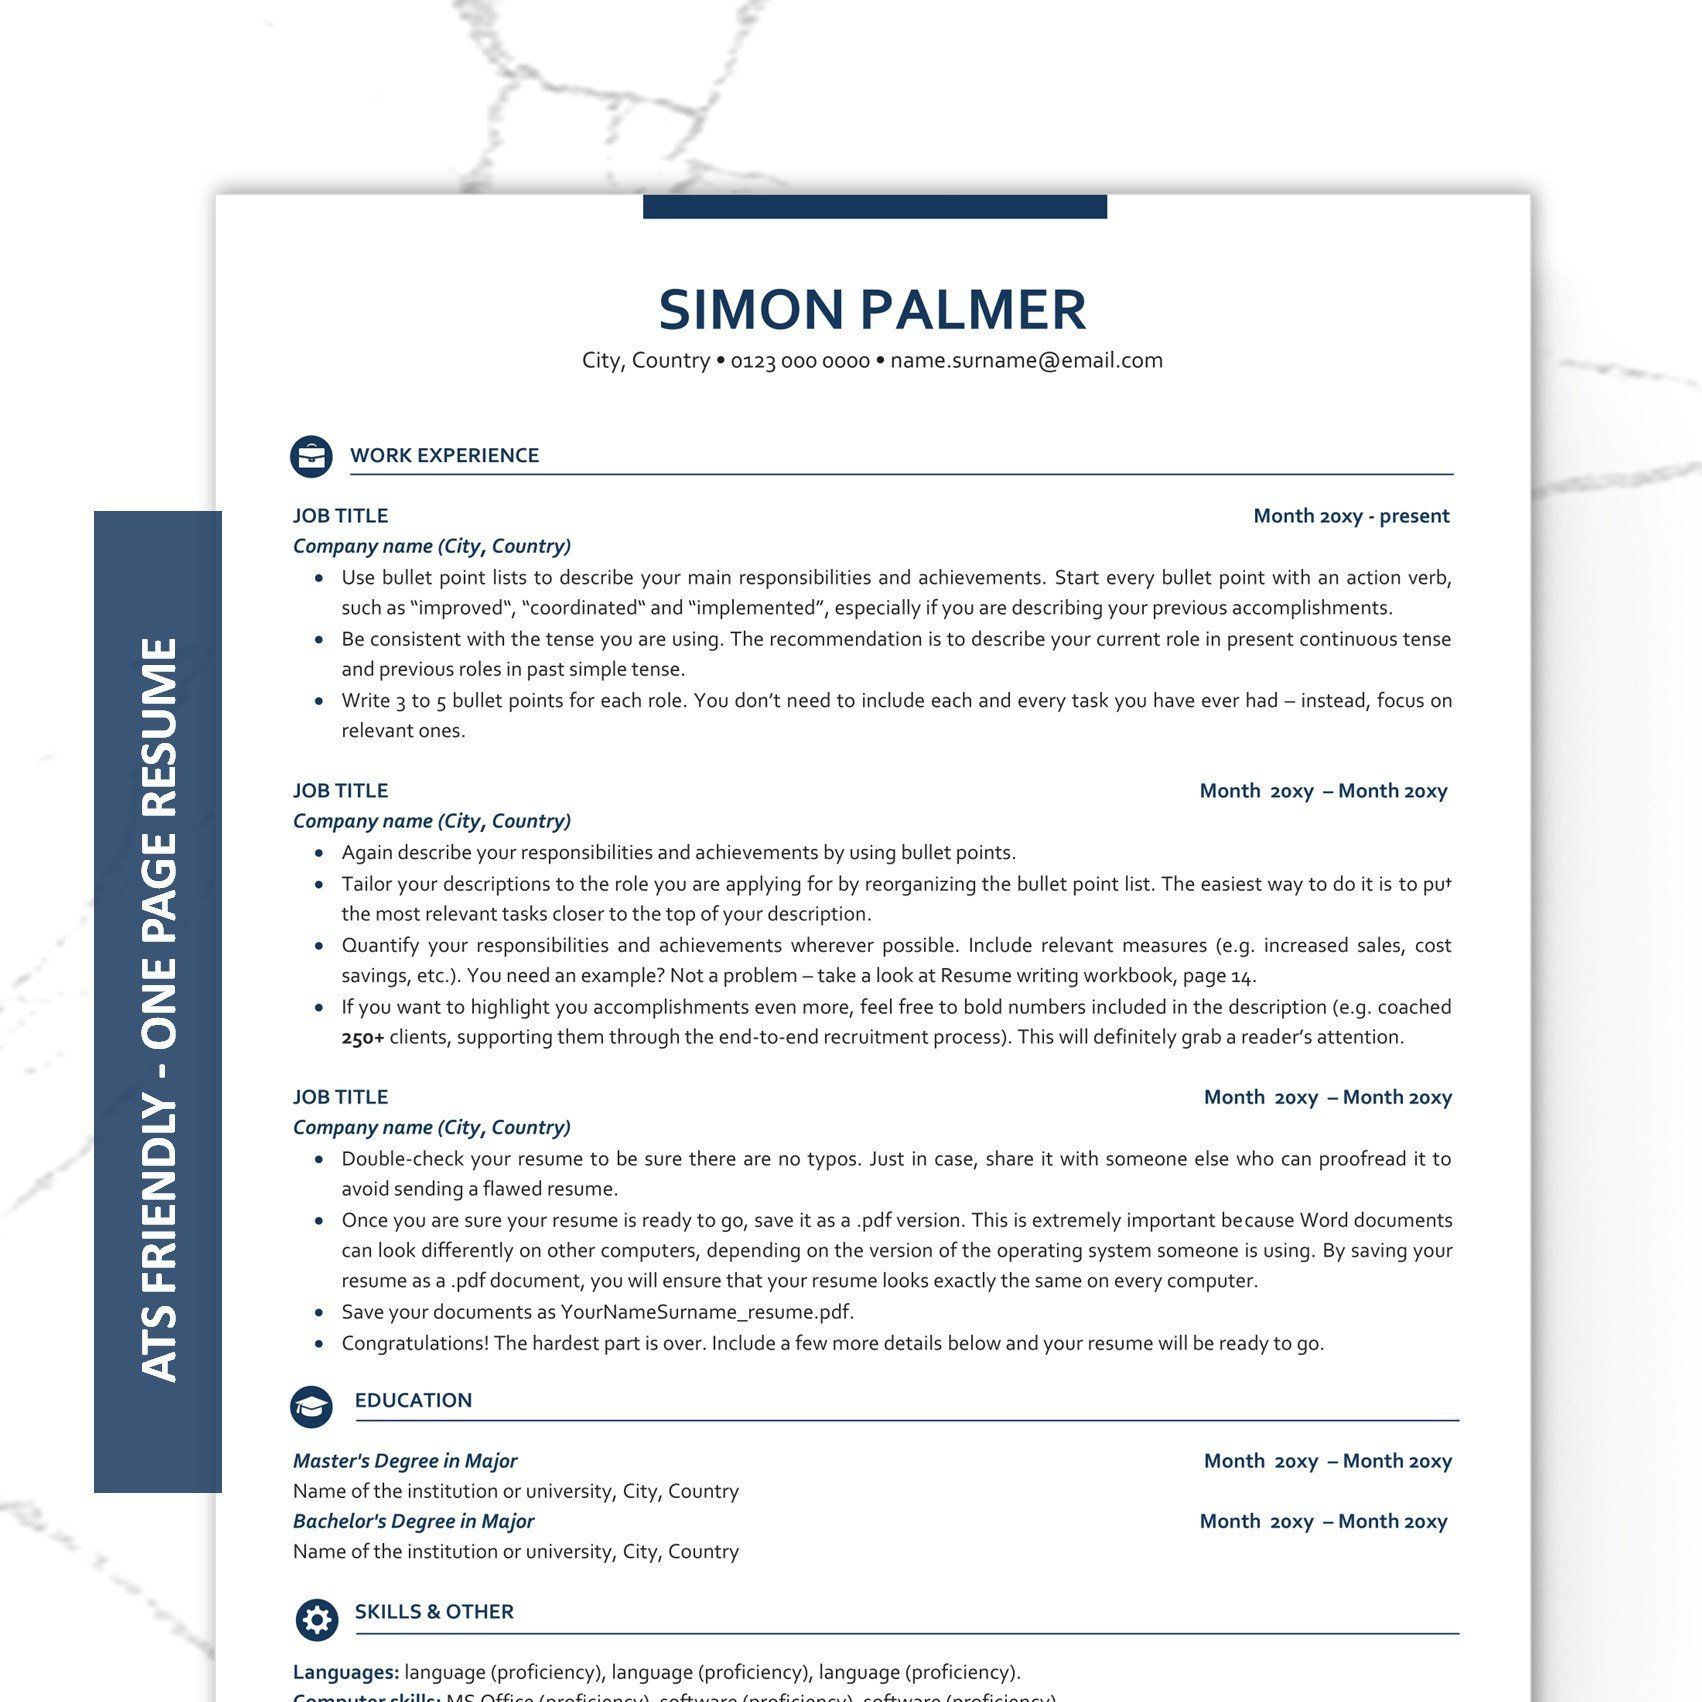 Executive Resume Template, ATS friendly Resume with Icons